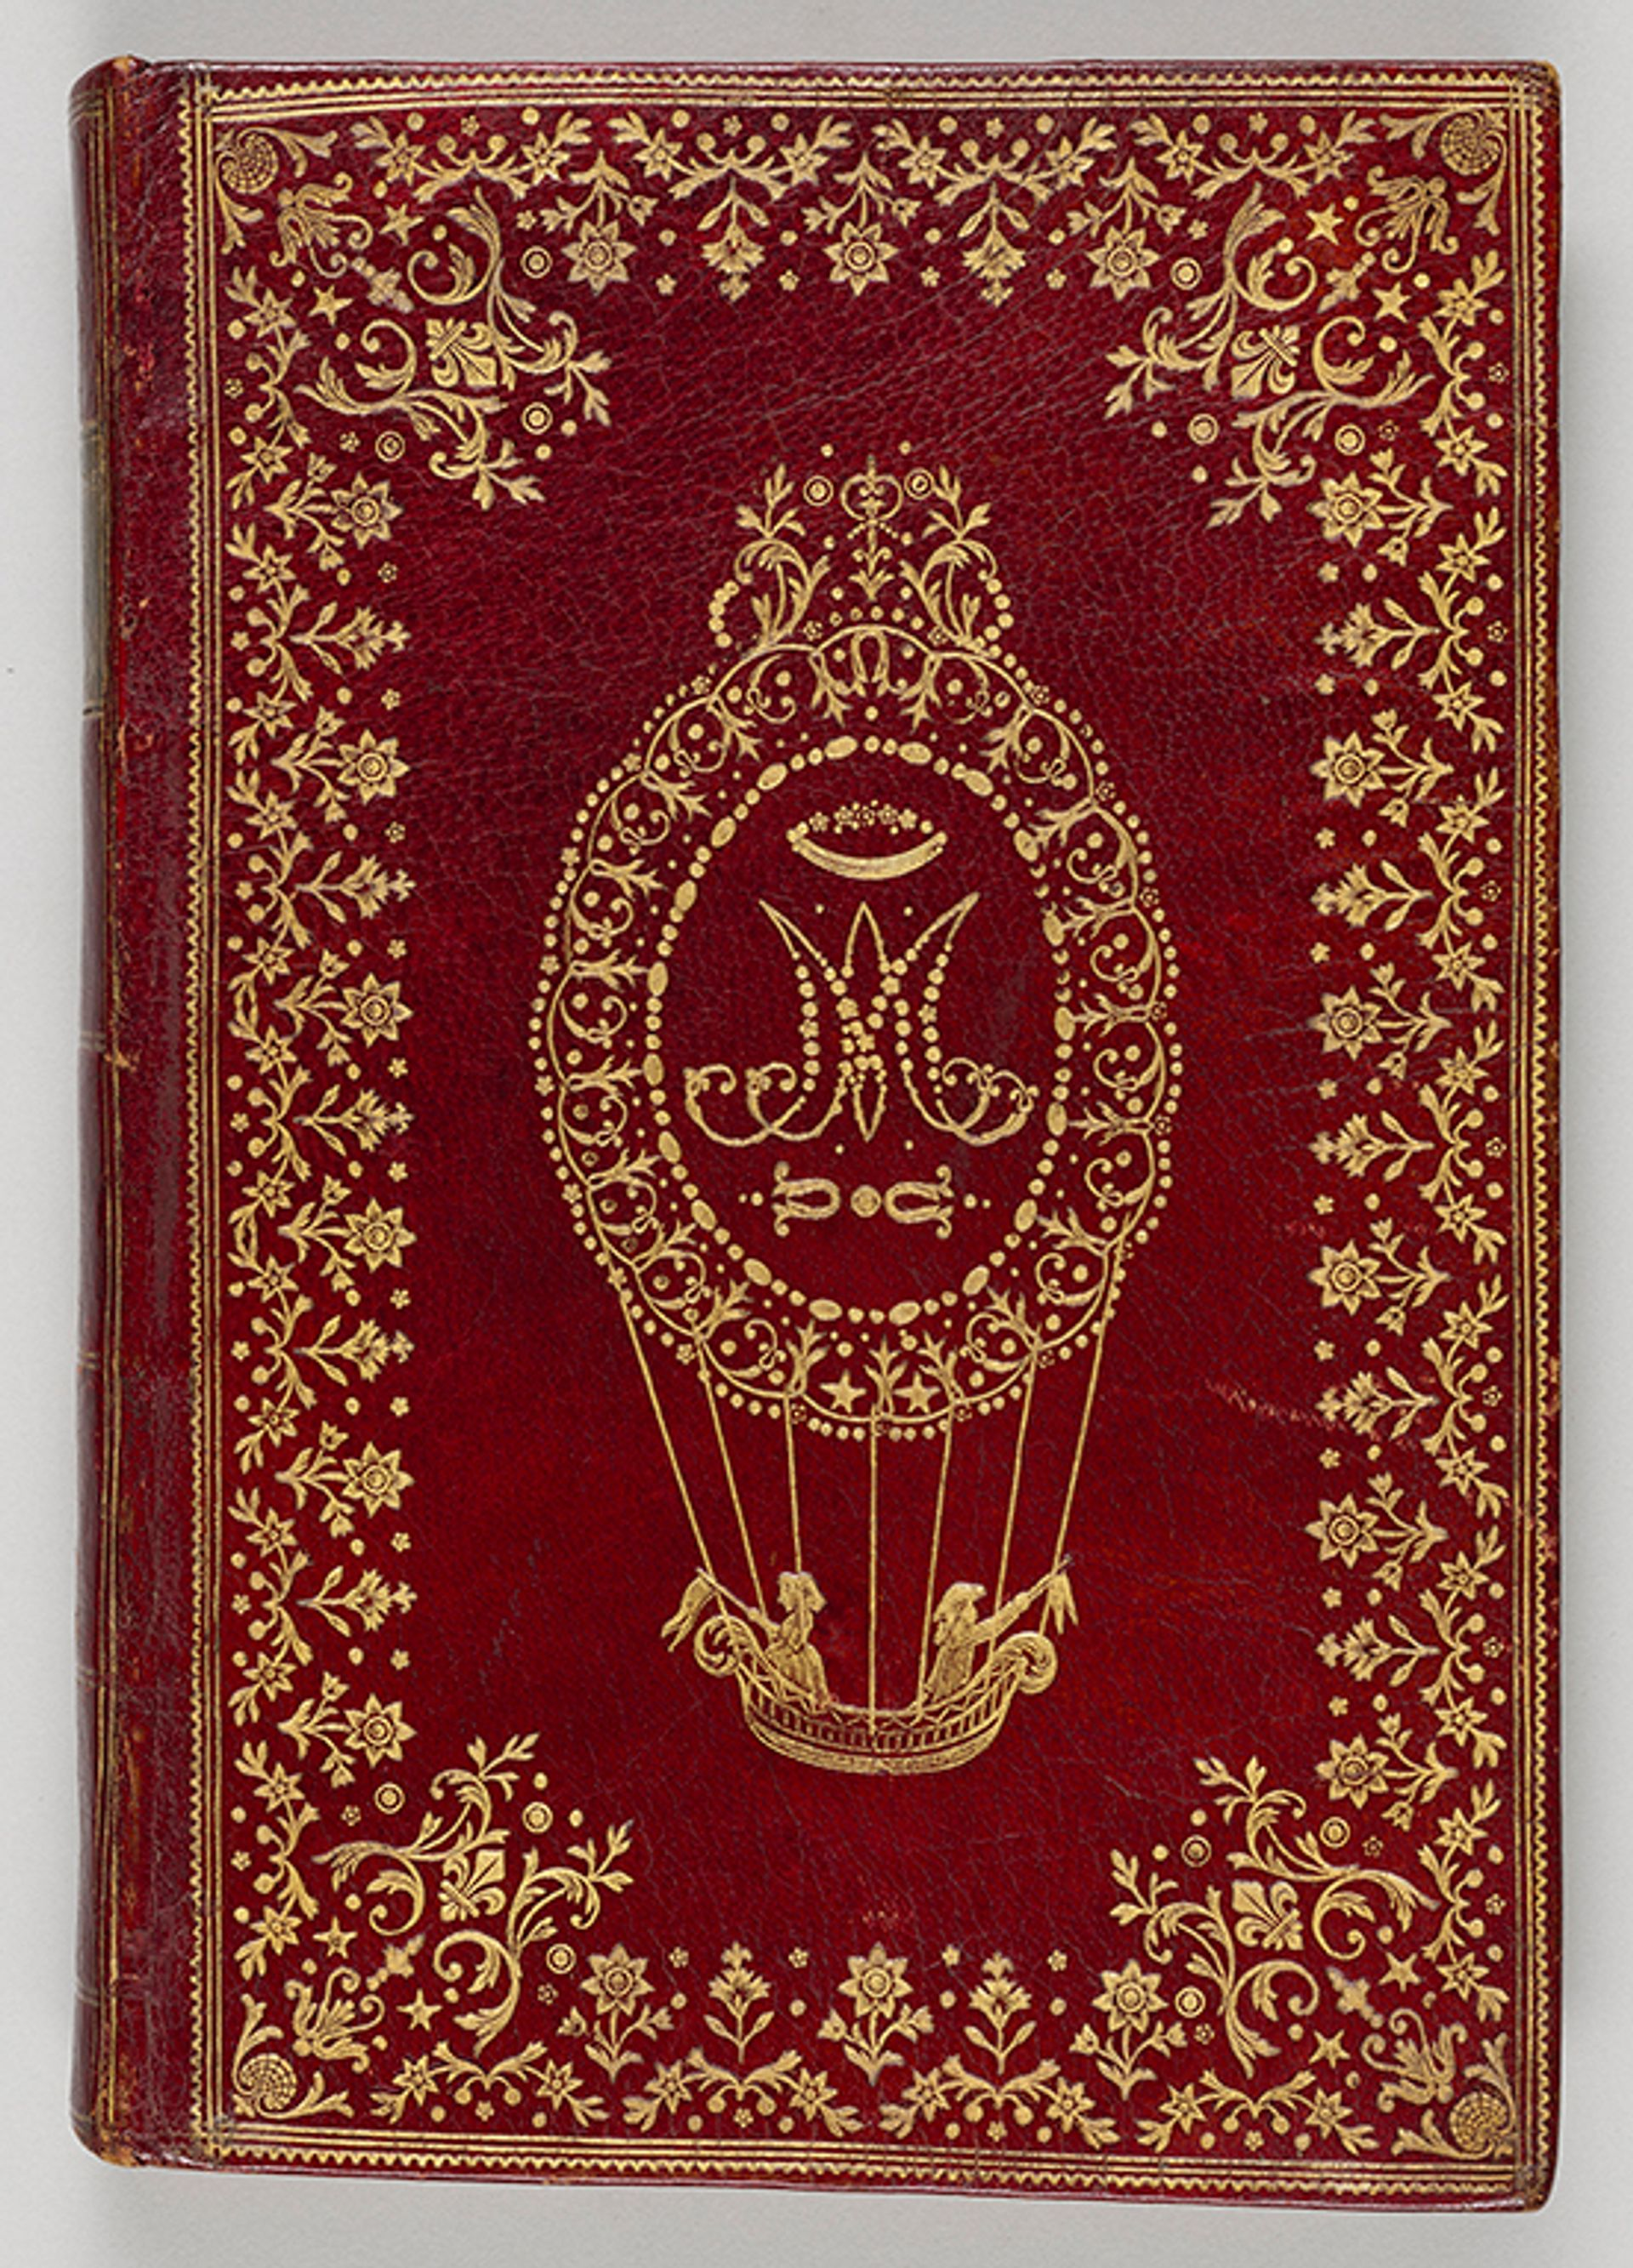 A 1782 French binding by Barthélemy Imbert (1747-1790) bequeathed by Jayne Wrightsman to the Morgan Library & Museum Janny Chiu